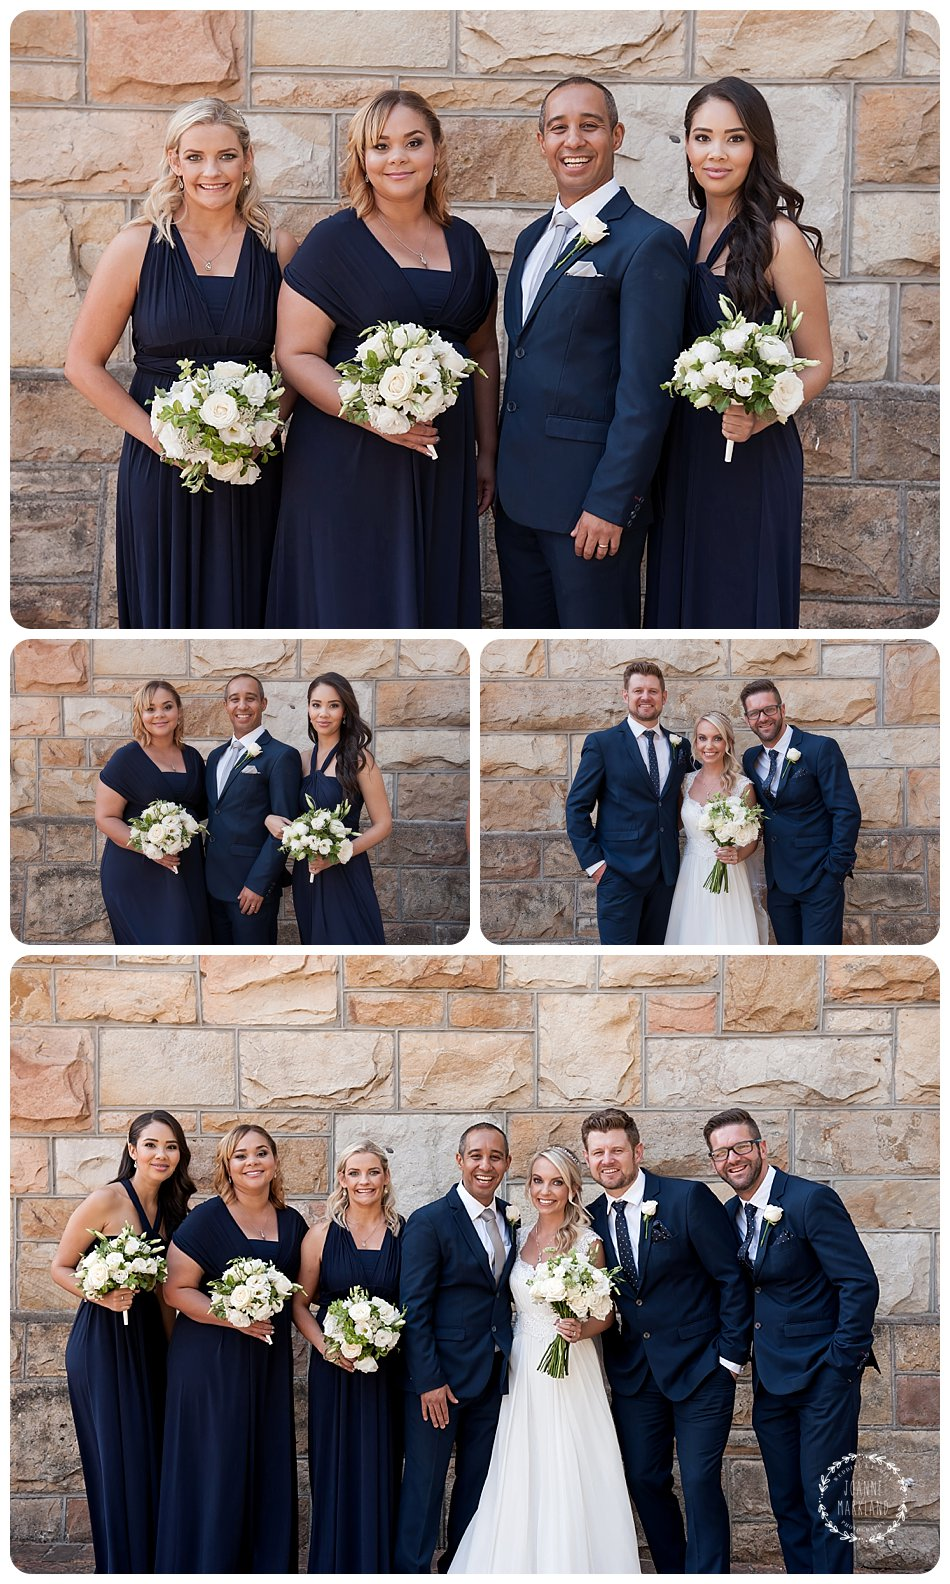 Steenberg_wedding_cape_town_photography_joanne_markland_photographer-035